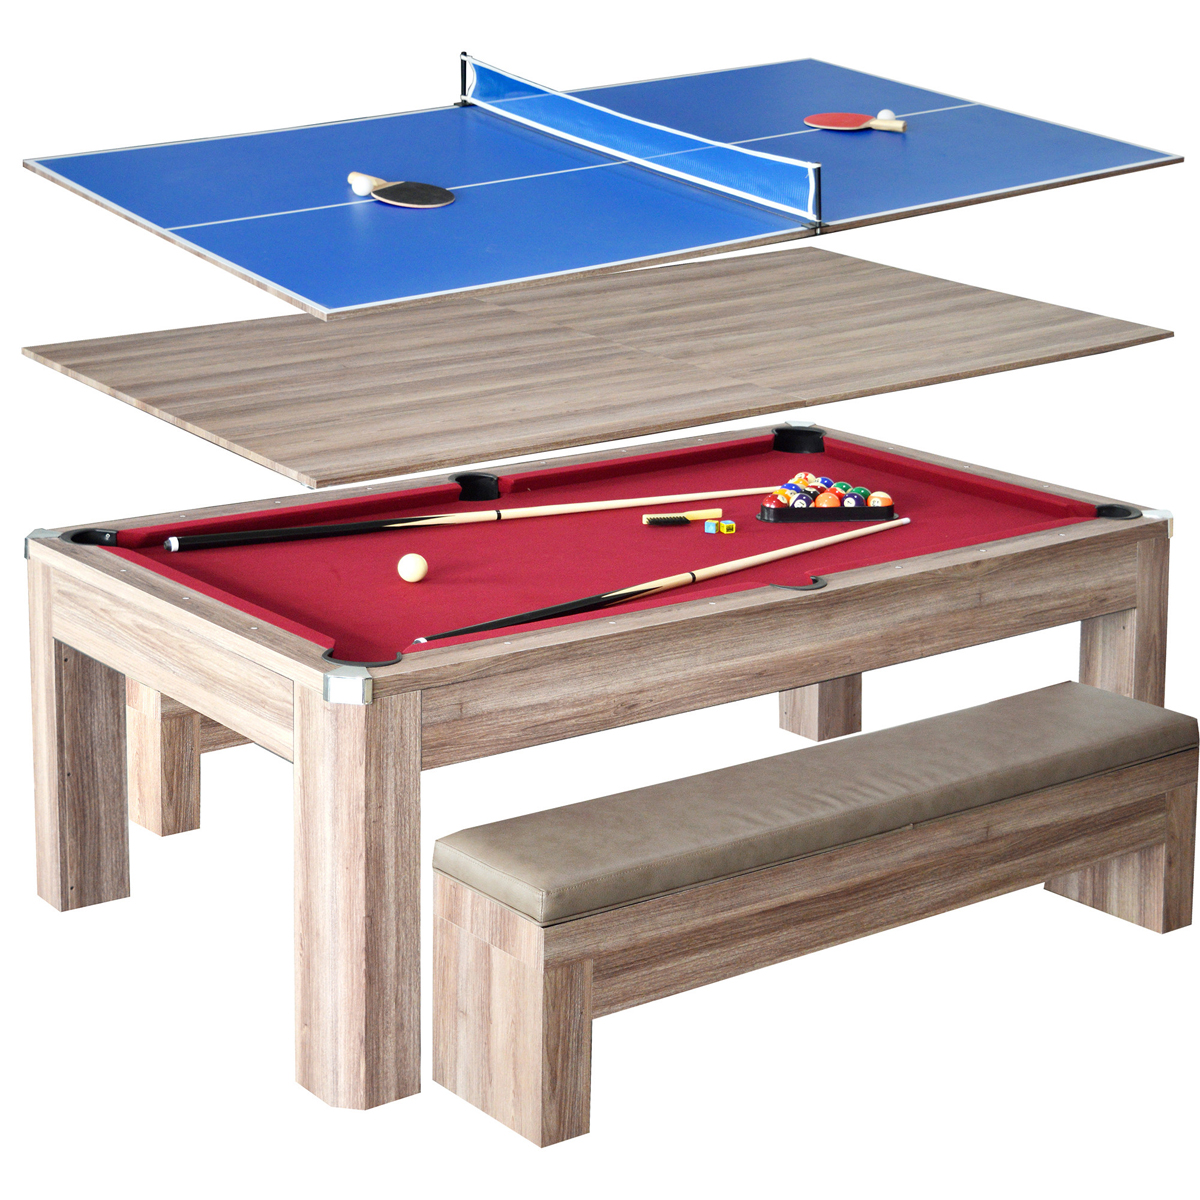 Pool Table Dining Room Table: 7' Newport Pool Table Set With Benches